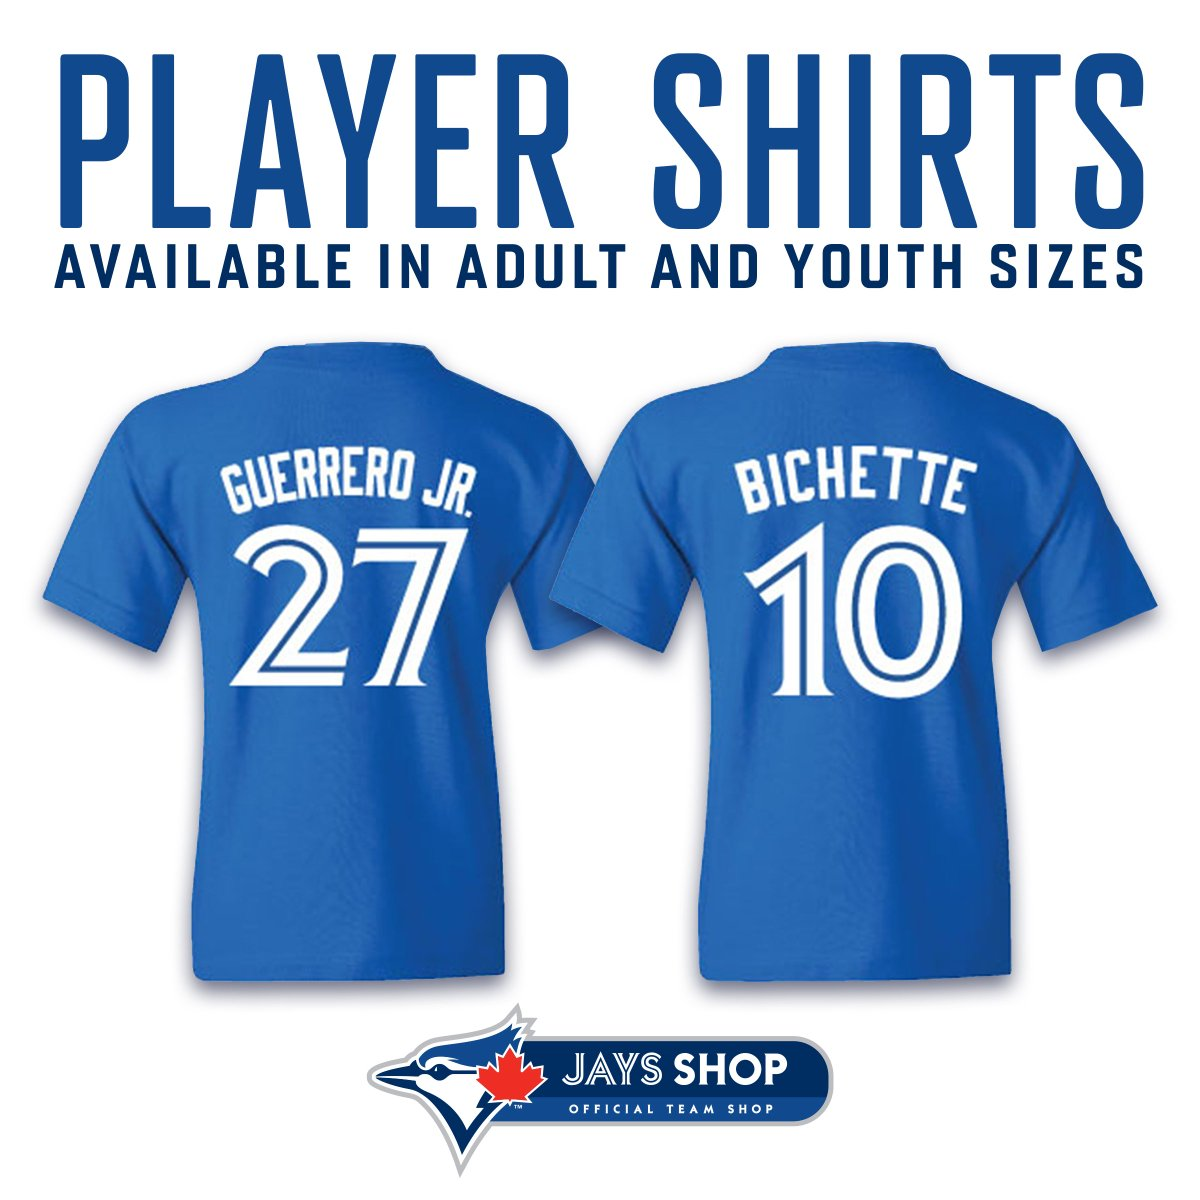 99715056fe2 Vladimir Guerrero Jr. and Bo Bichette Player Shirts are available in the Dunedin  Stadium Jays Shop and Jays Shop Online.